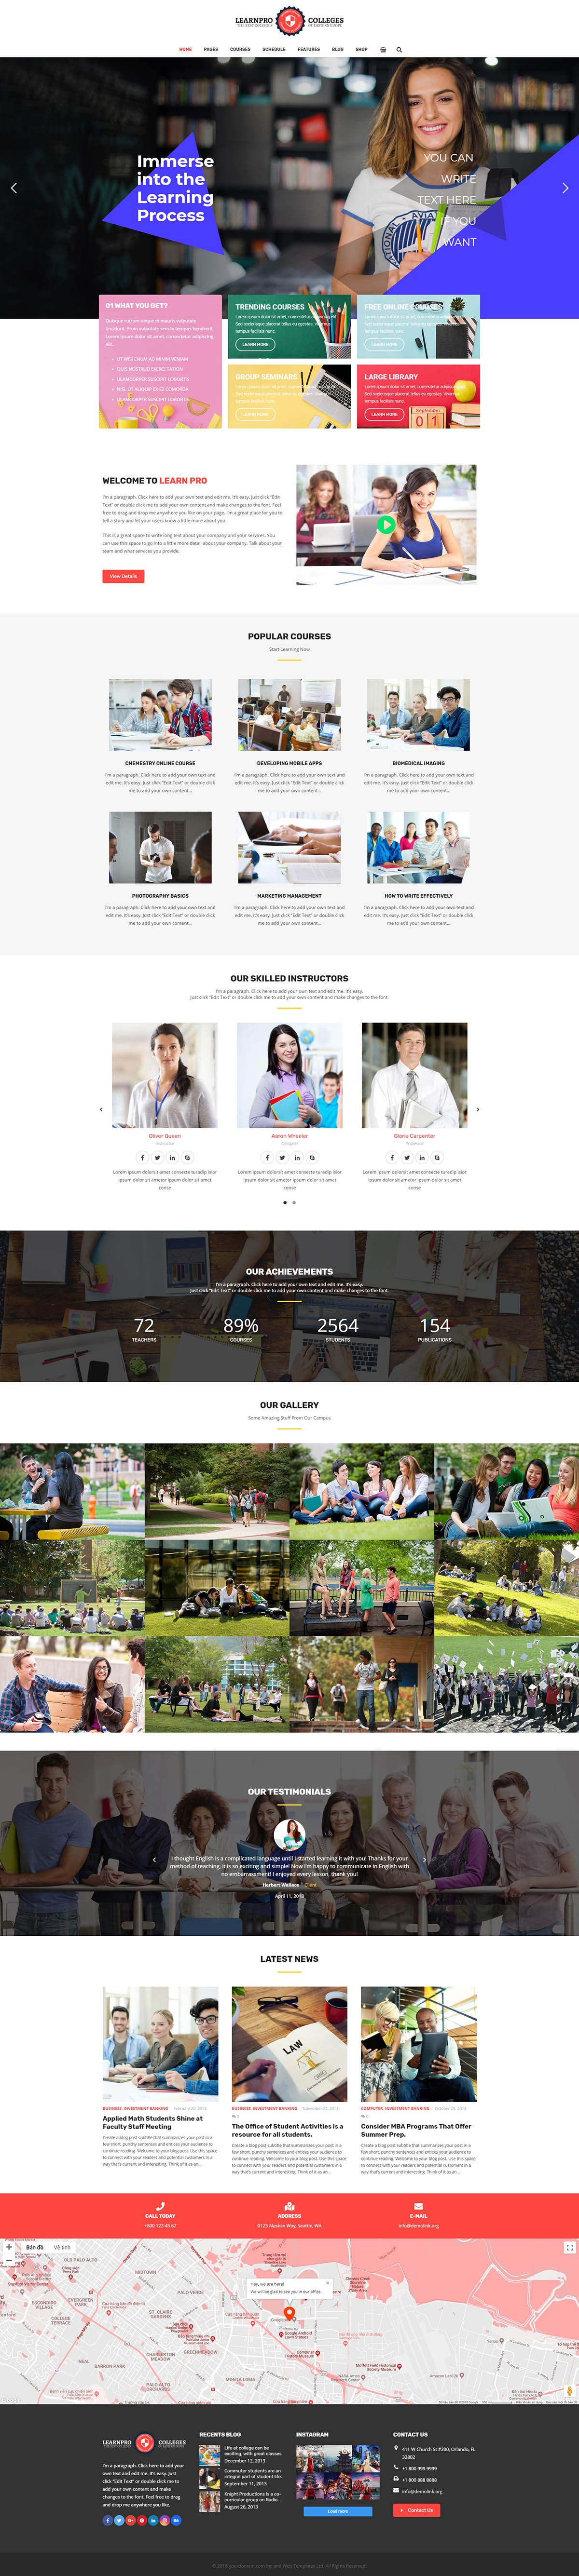 Learnpro - Education WordPress Theme Screenshot 2